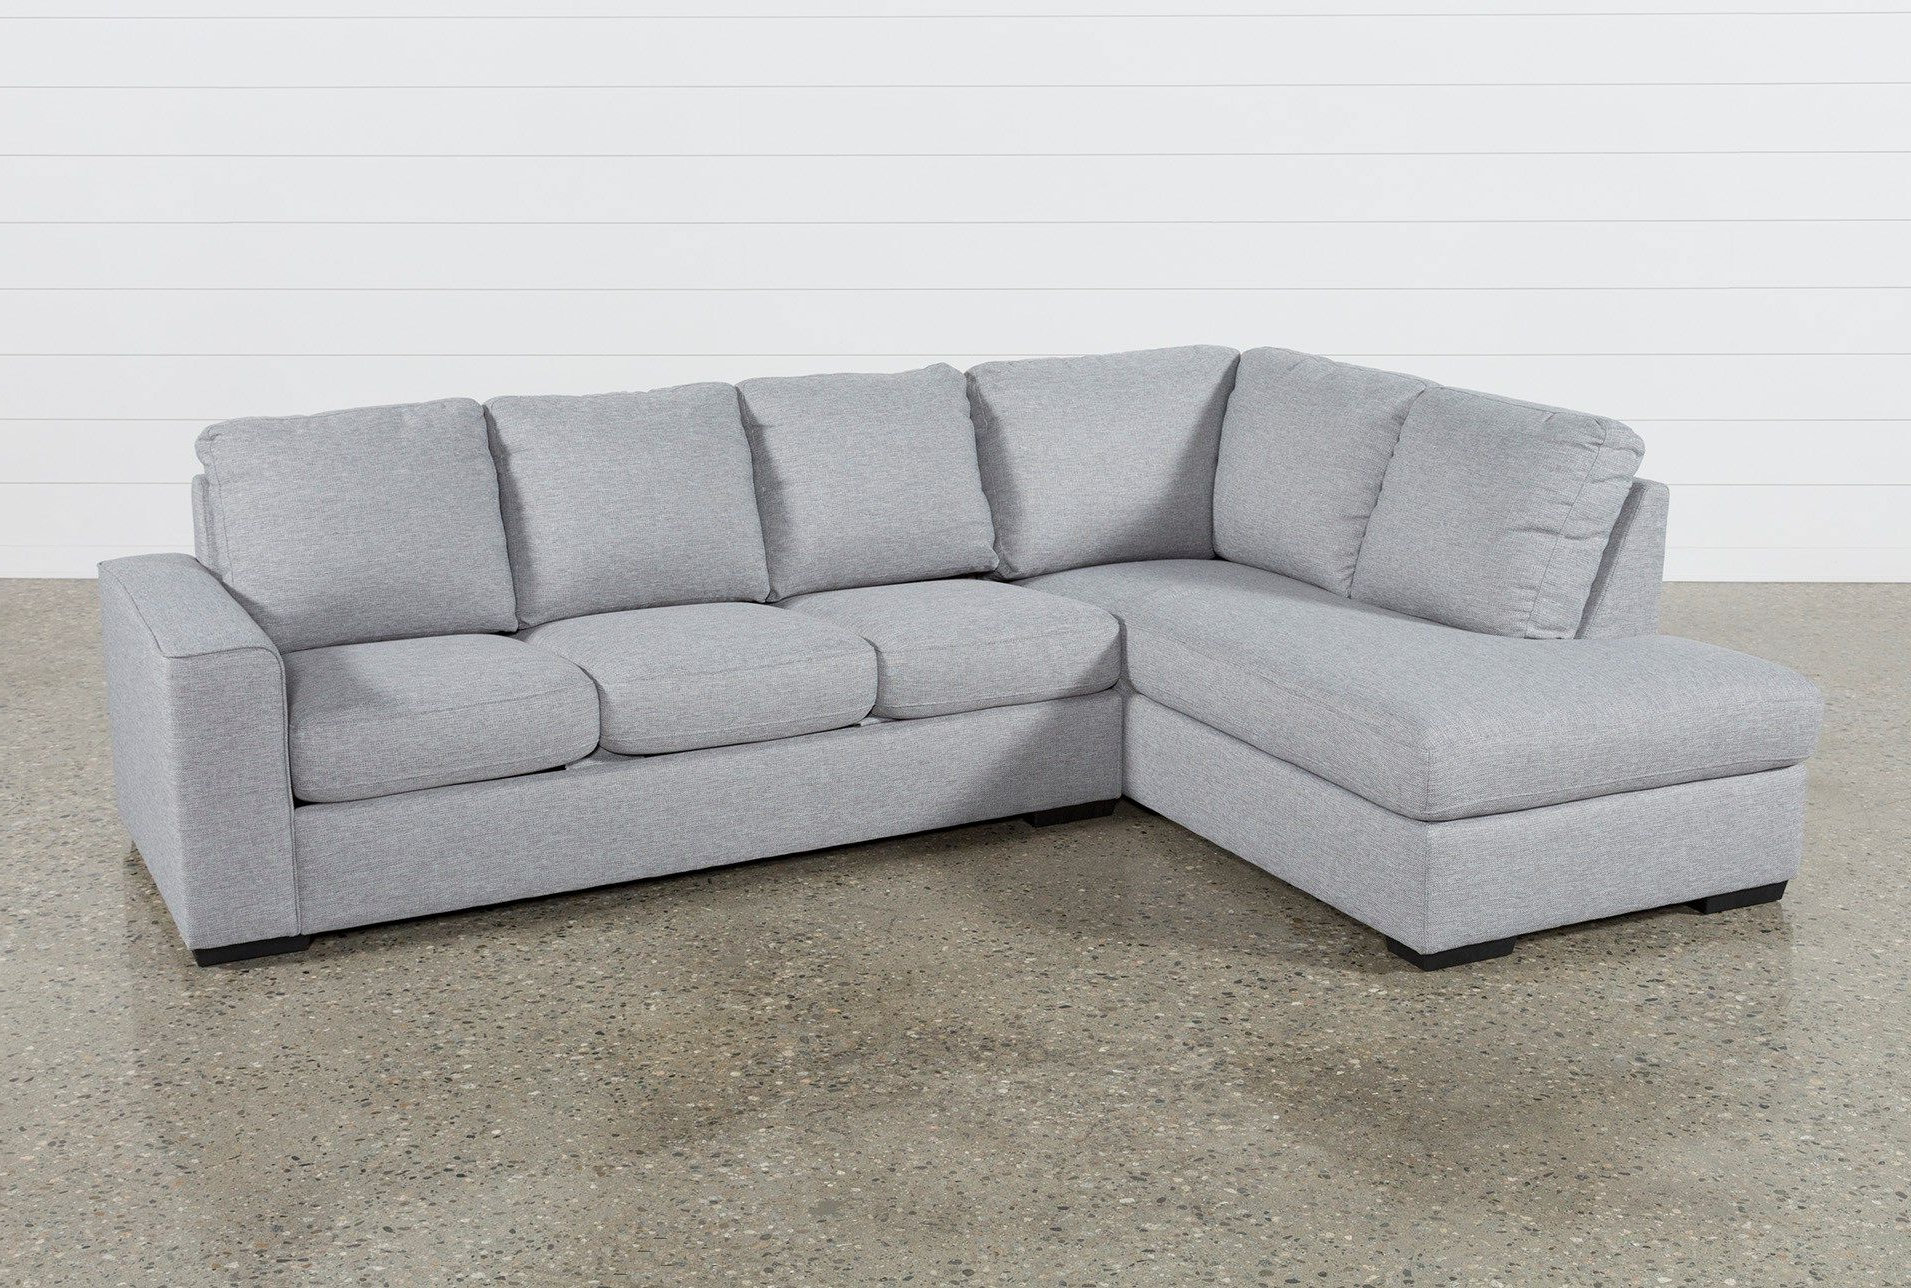 Lucy Dark Grey 2 Piece Sleeper Sectionals With Laf Chaise With Regard To Best And Newest Lucy Grey 2 Piece Sectional W/laf Chaise In  (View 12 of 20)